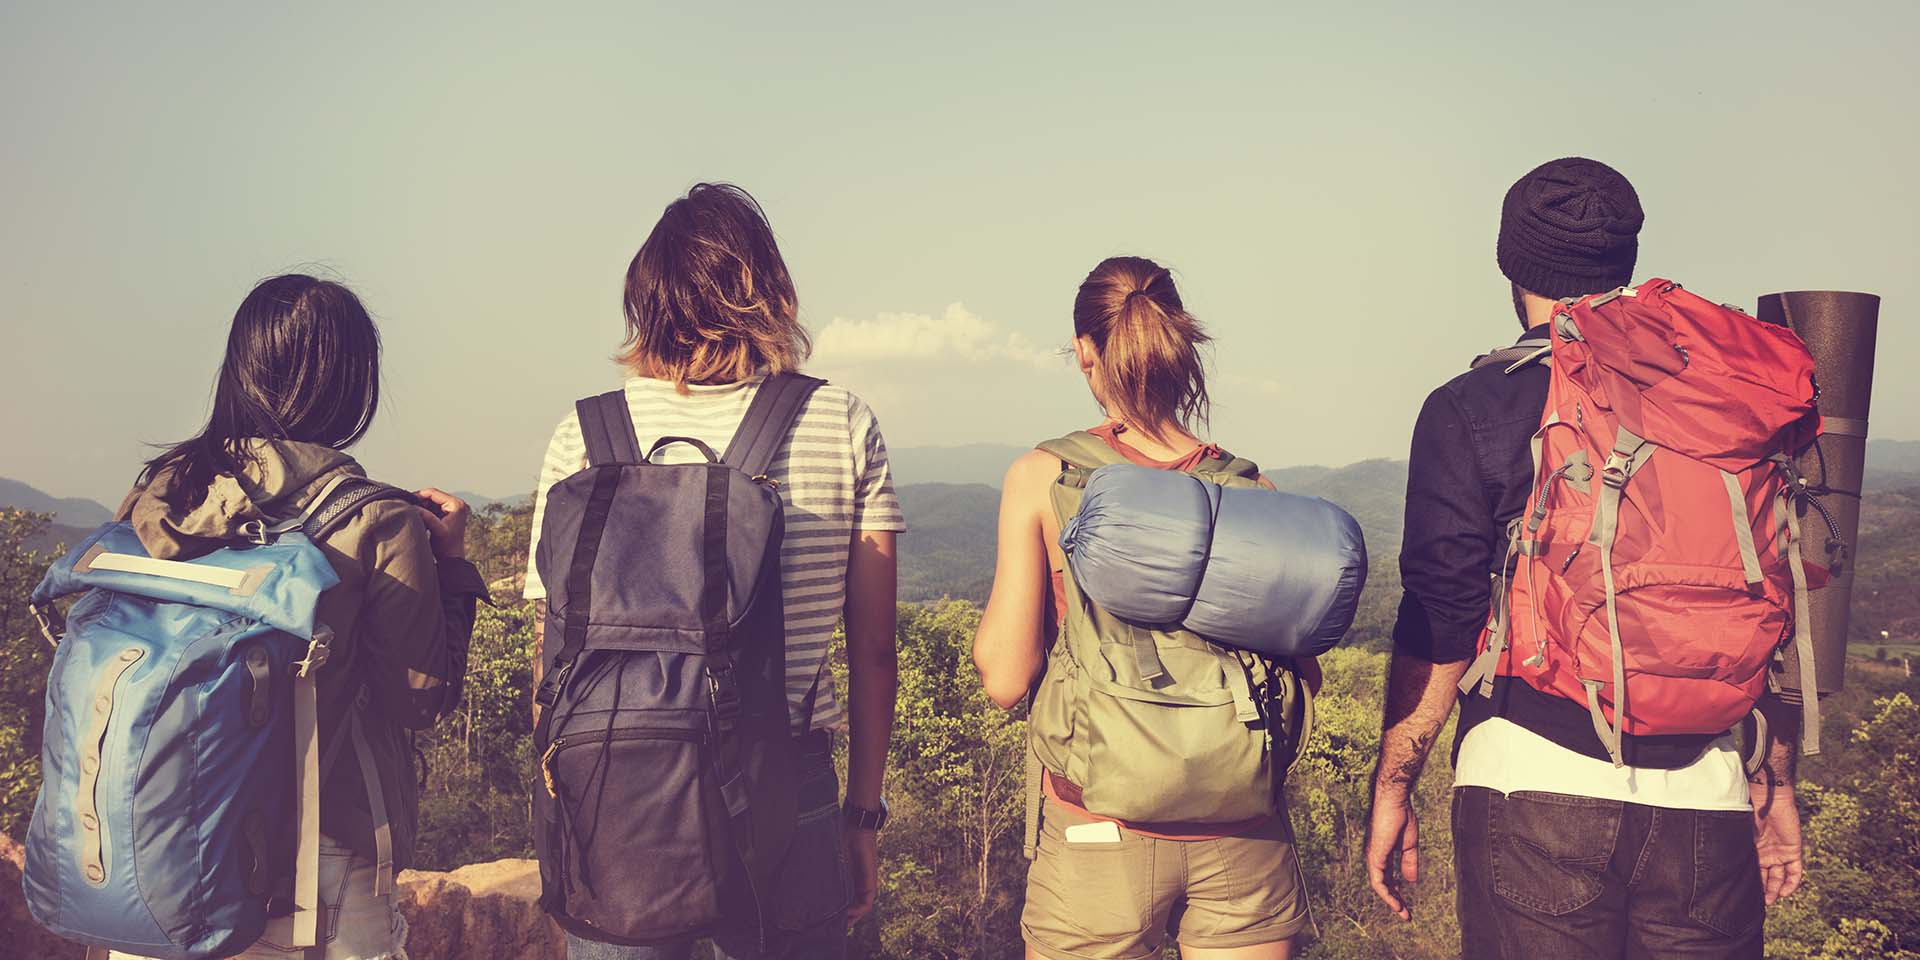 backpackers-getting-ready-for-travel